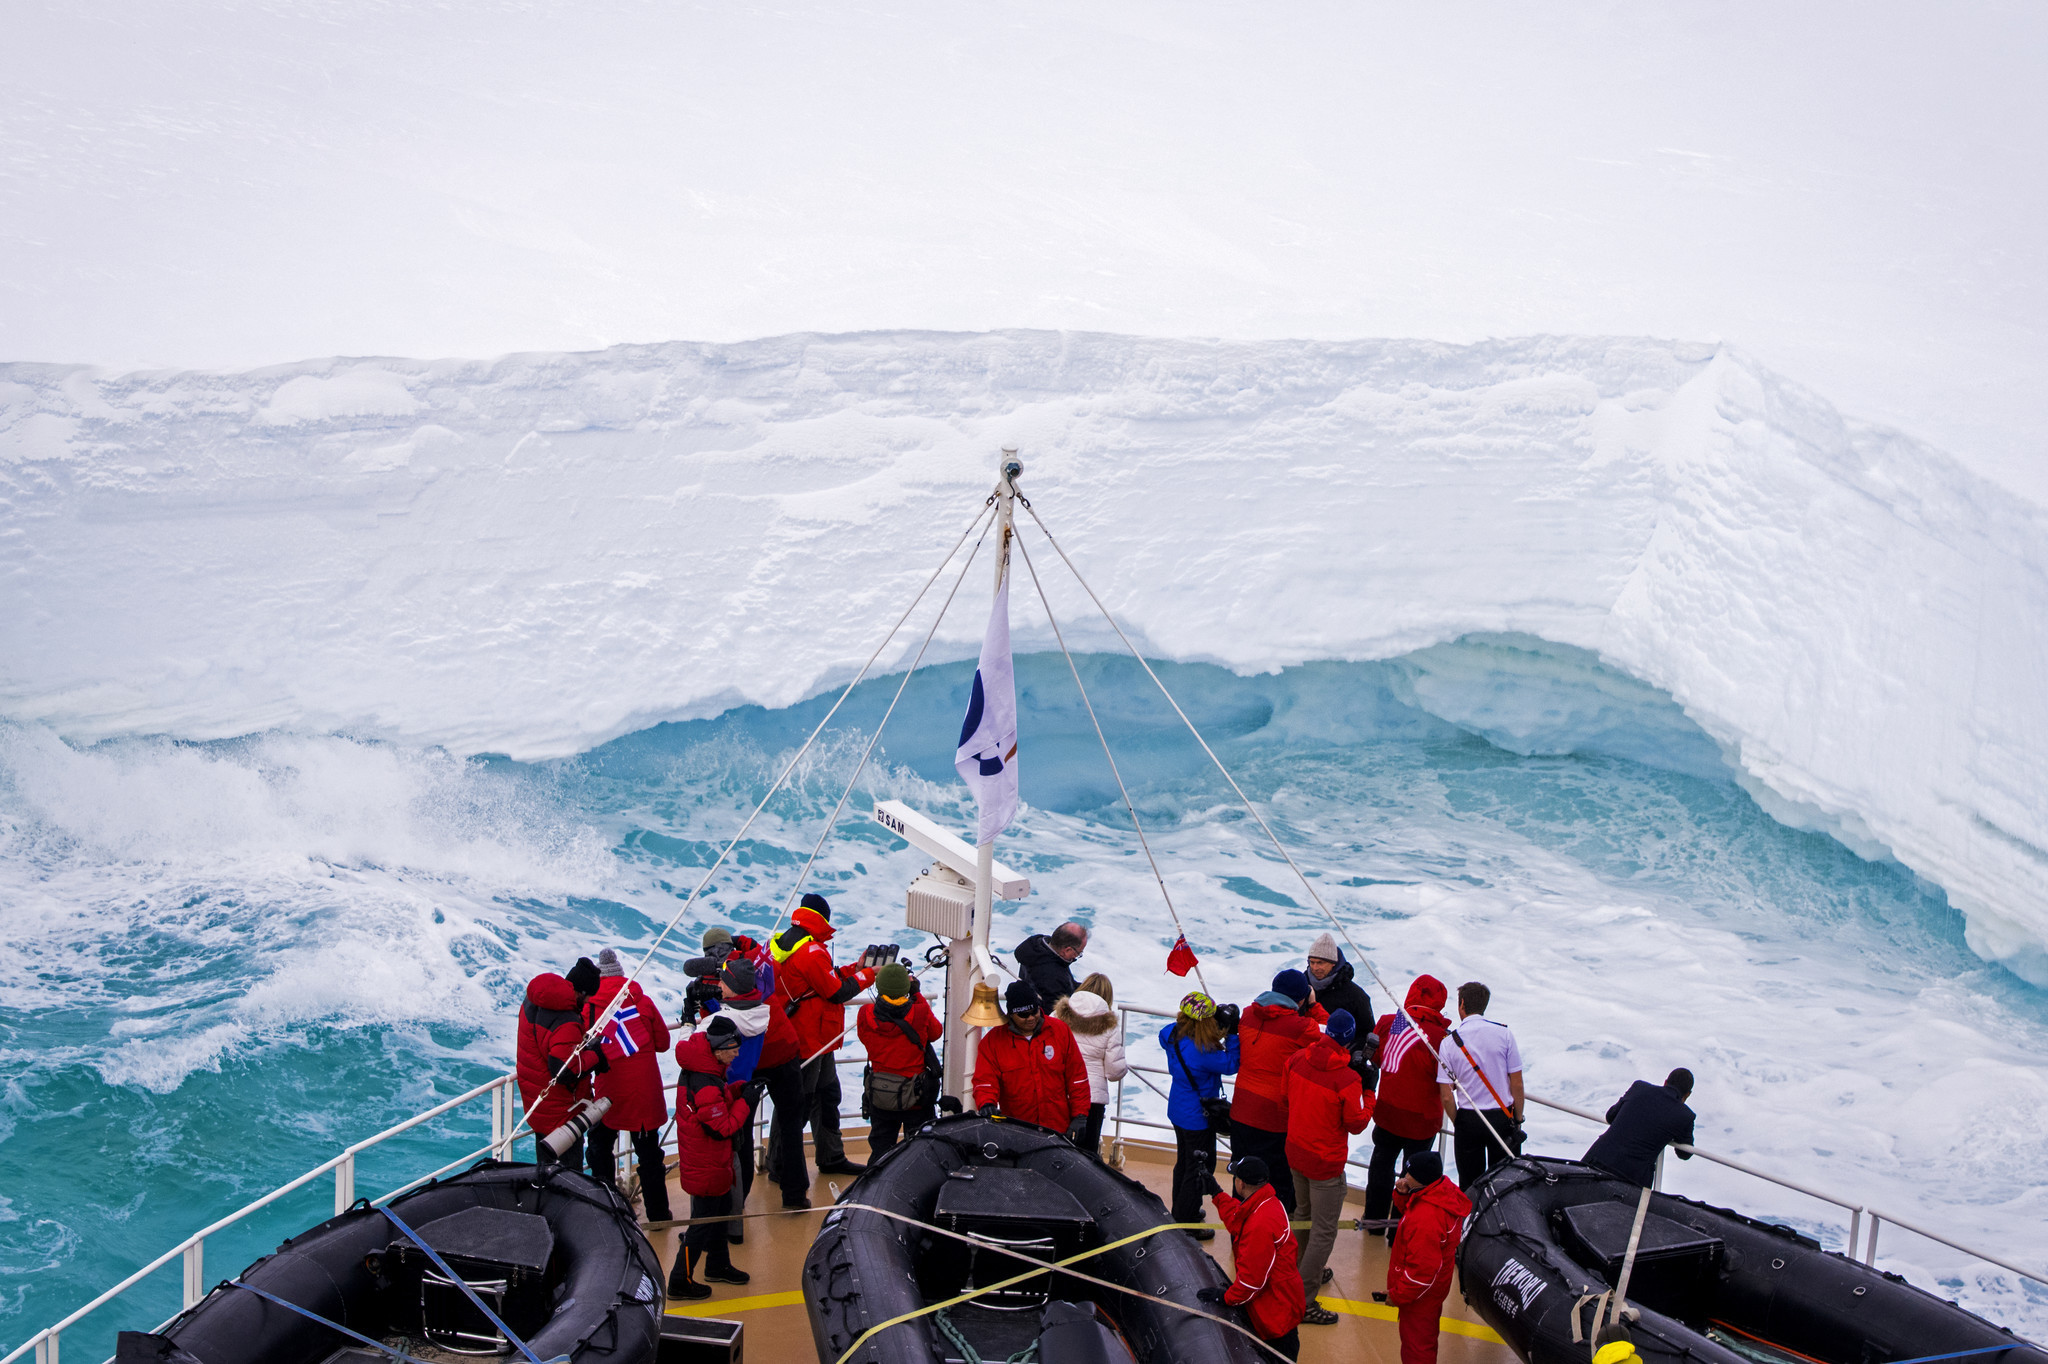 The World came within two meters of the Ross Ice Shelf.